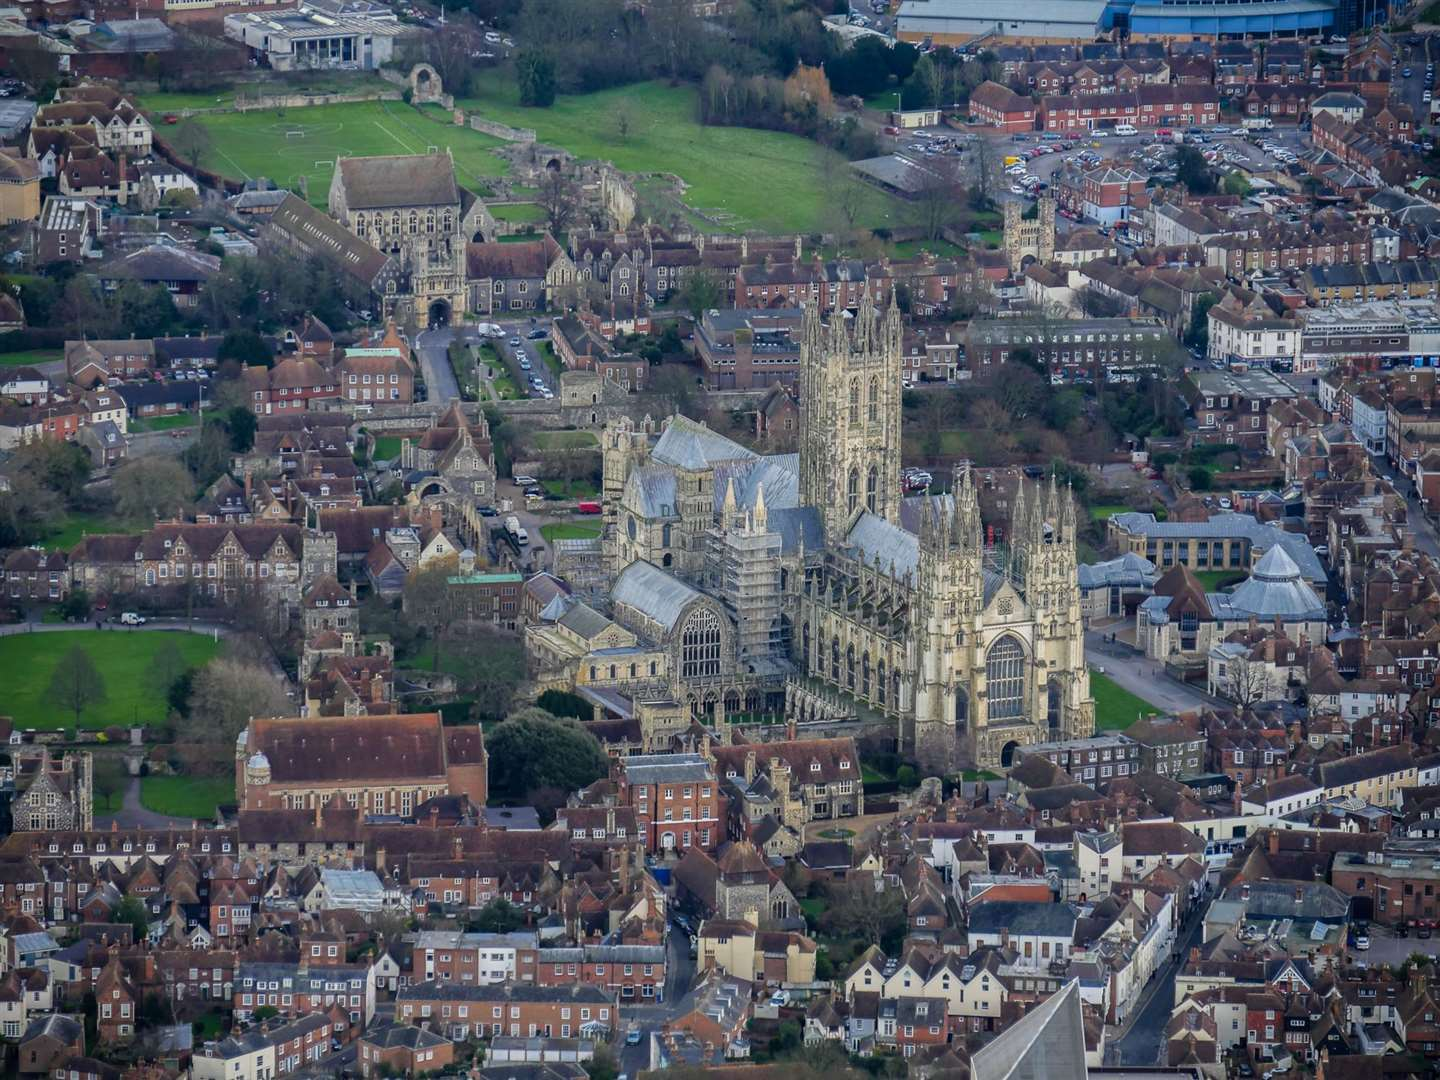 The Cathedral is one of Kent's biggest attractions